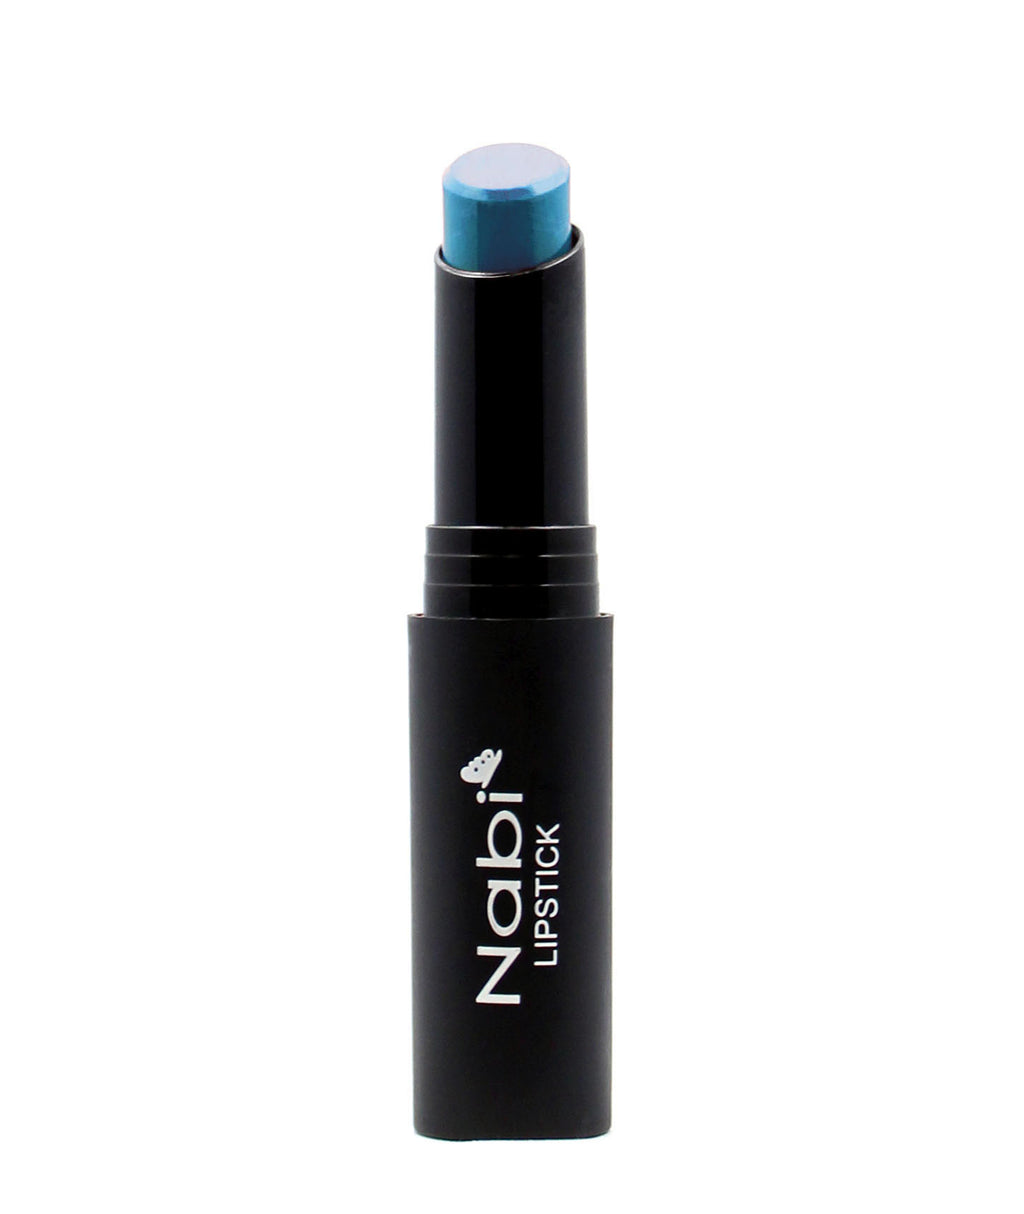 NLS83 - Regular Lipstick Sky Baby Blue